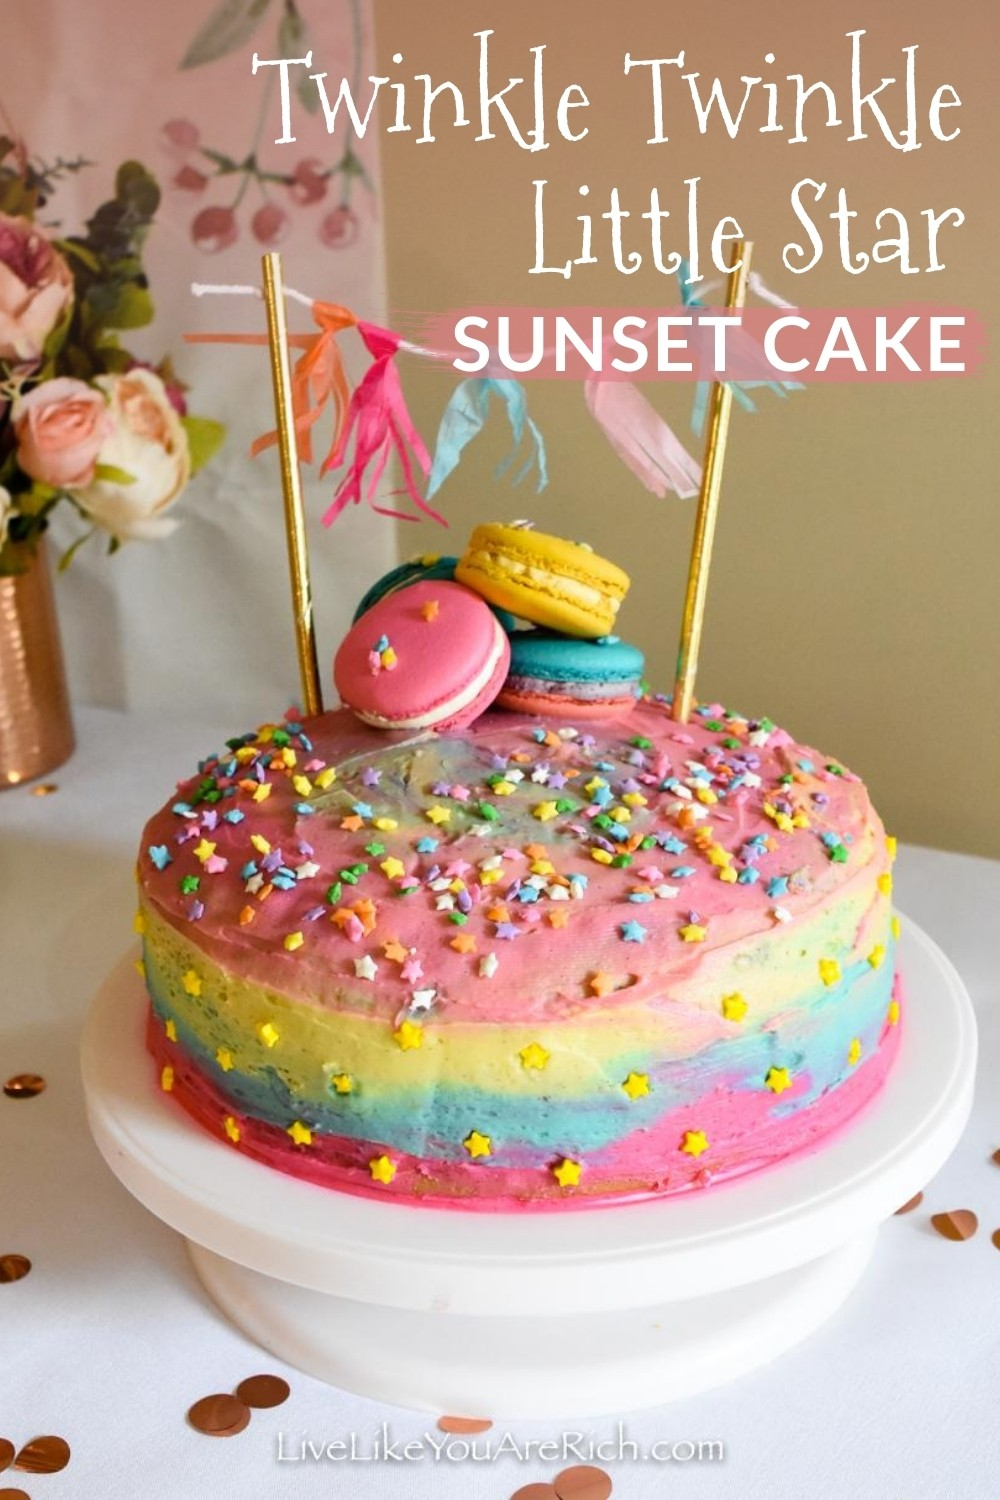 "I was planning a Twinkle Twinkle Little Star Party for my one year old's first birthday. My decor called for color. So, I decided that since you can sometimes see a few bright stars at sunset, I would make two Twinkle Twinkle Little Star ""Sunset Cake"". They were very simple to make and turned out quite cute."